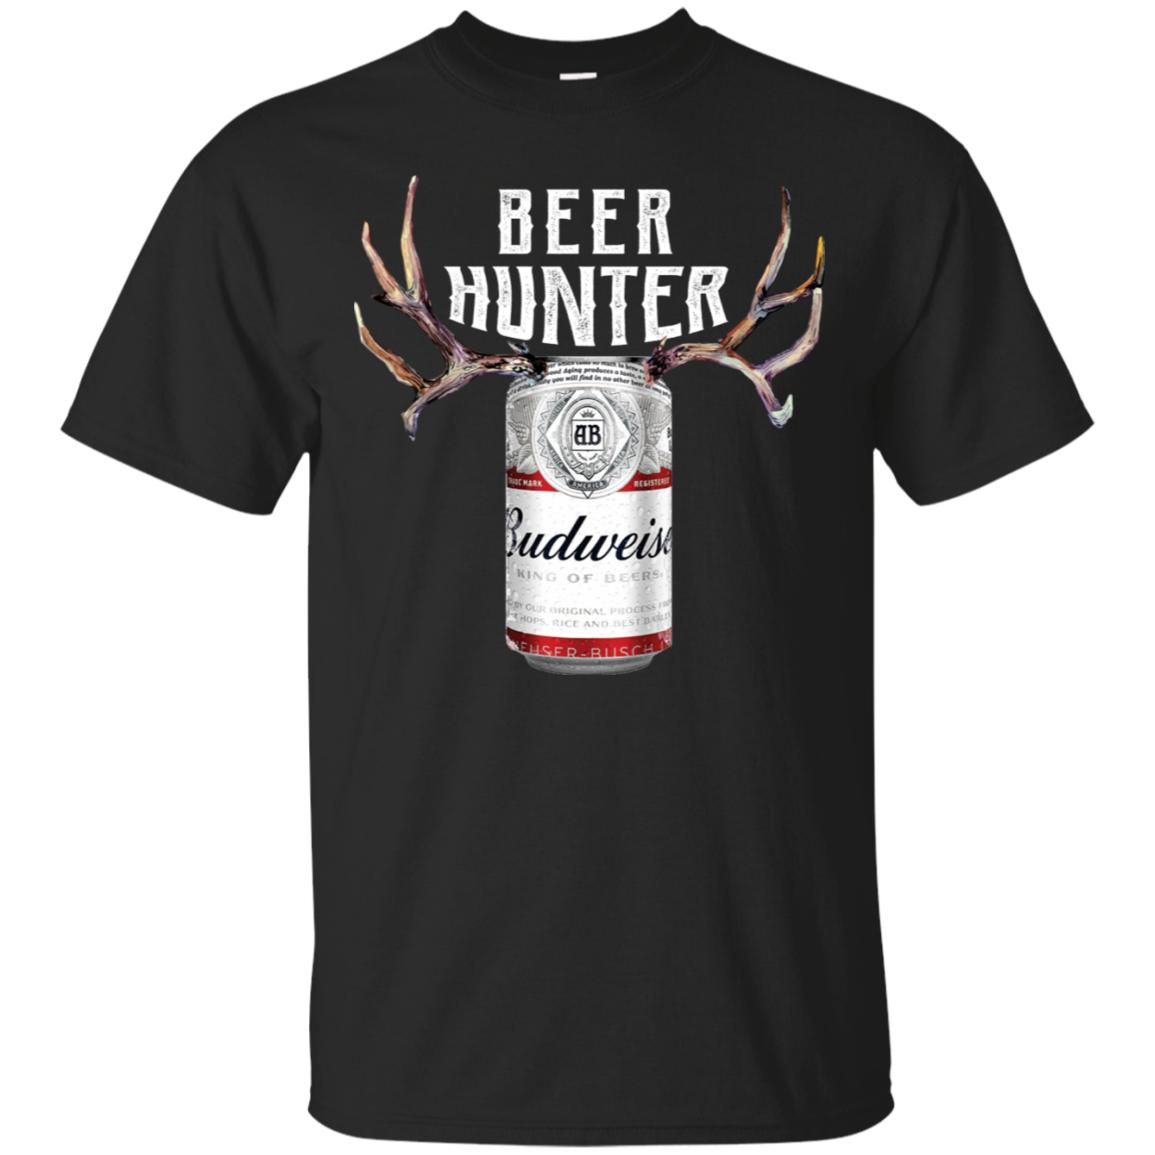 Beer Hunter Budweiser Funny Hunting Beer Reindeer T-Shirt